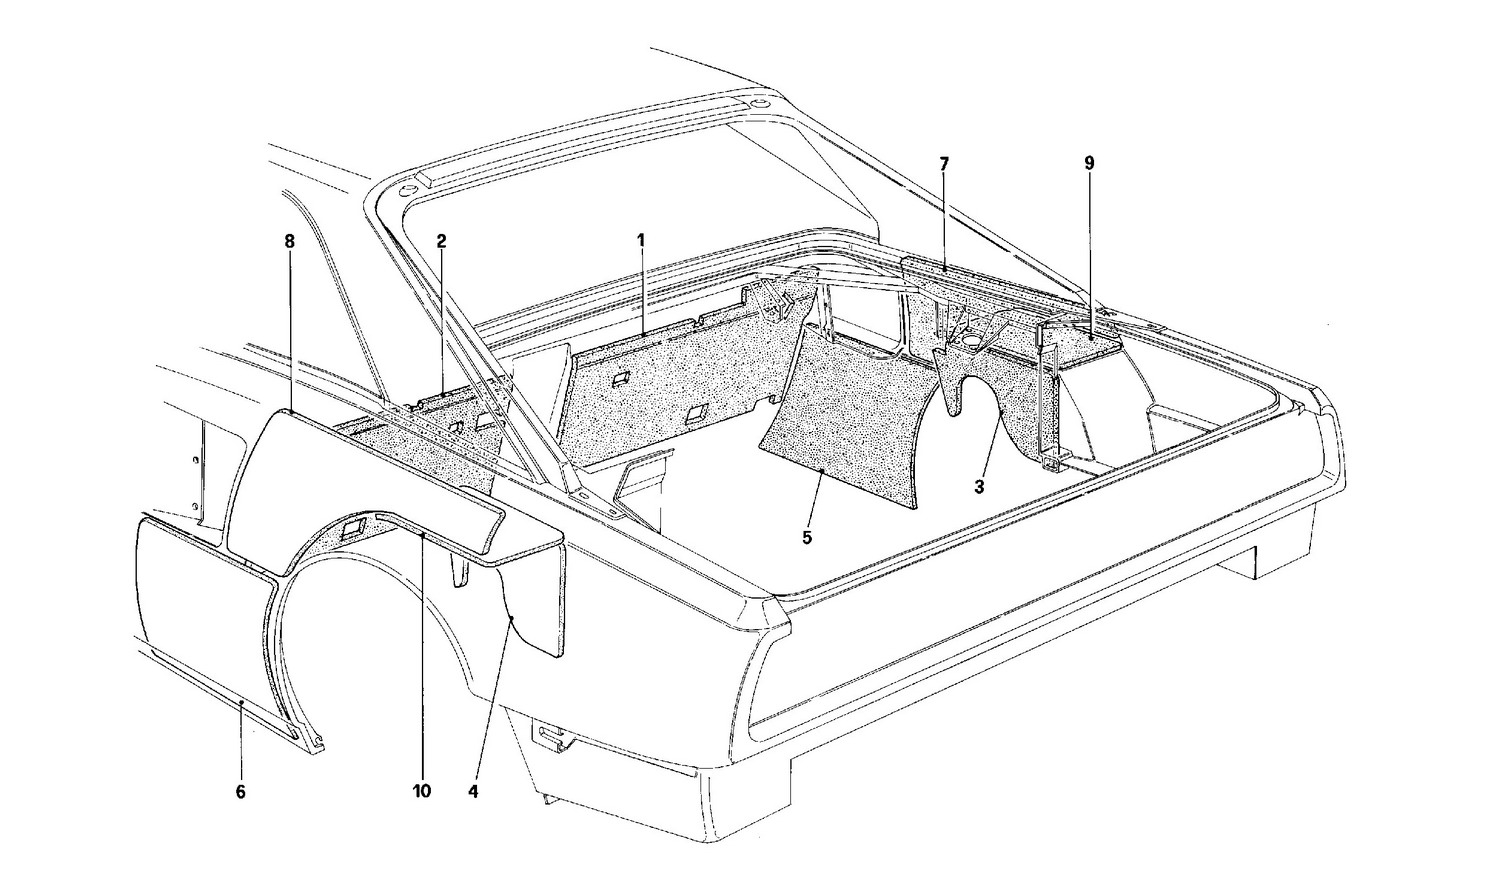 Schematic: Engine Compartment Insulation - Coupe - For Ch Version Cars